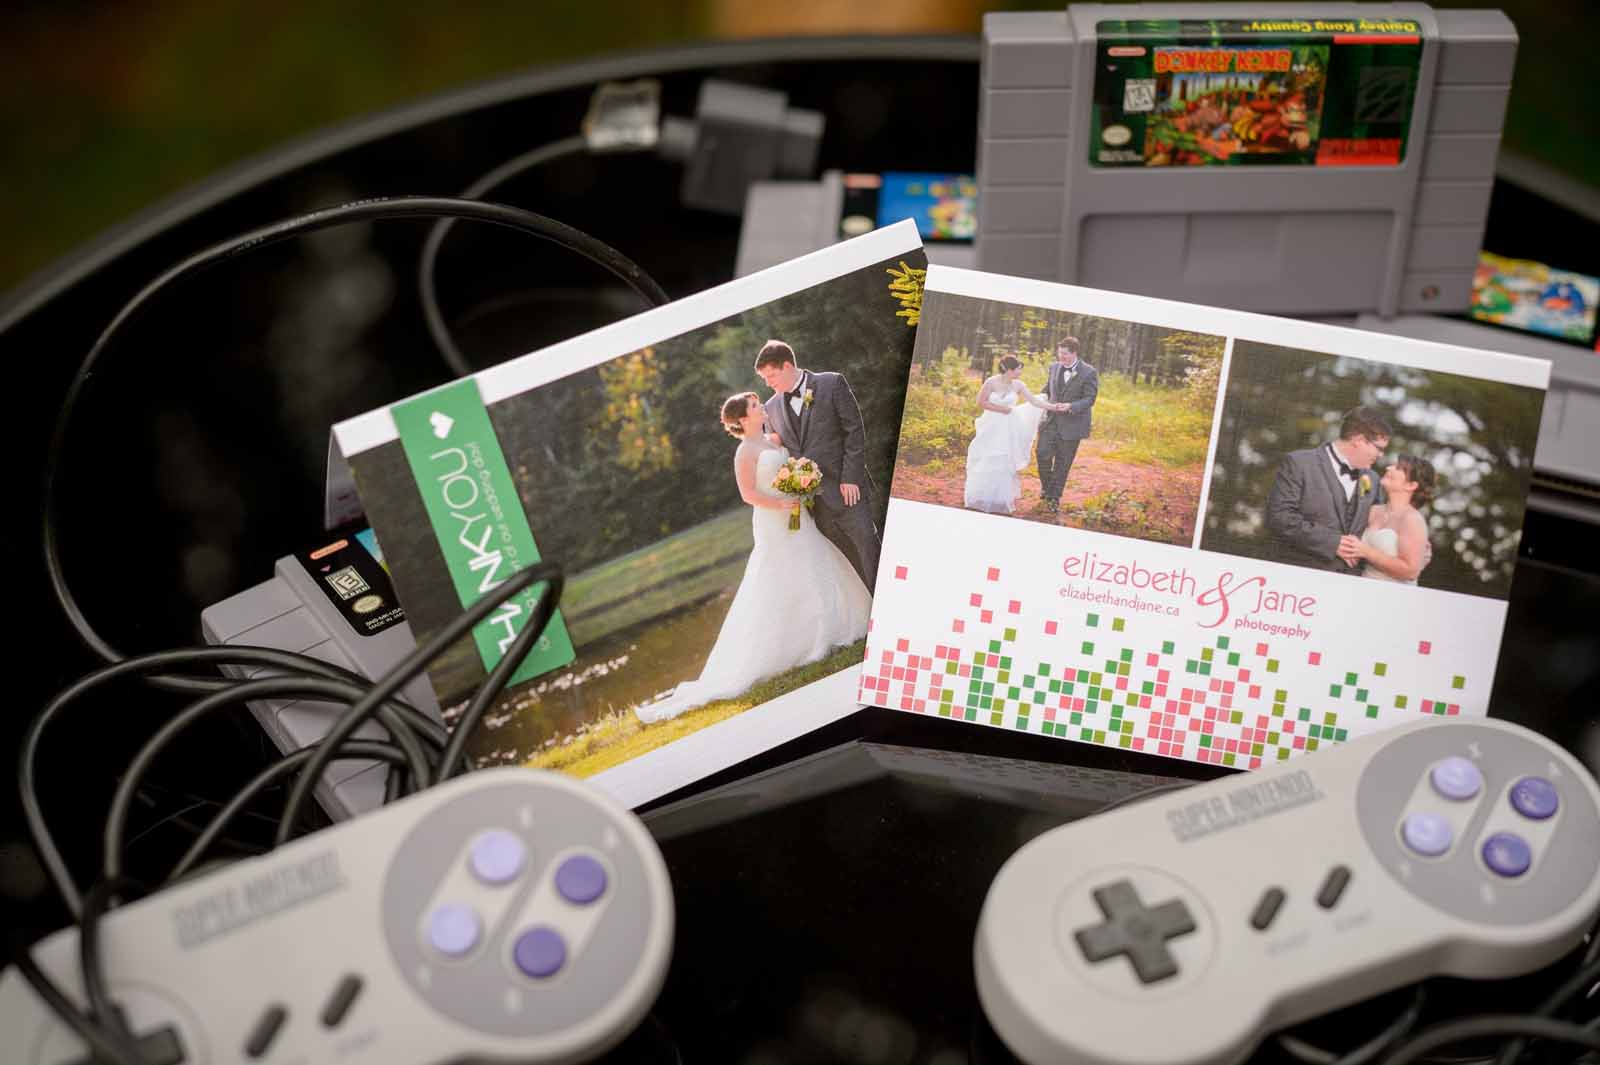 Custom Wedding thank you cards with a video game theme